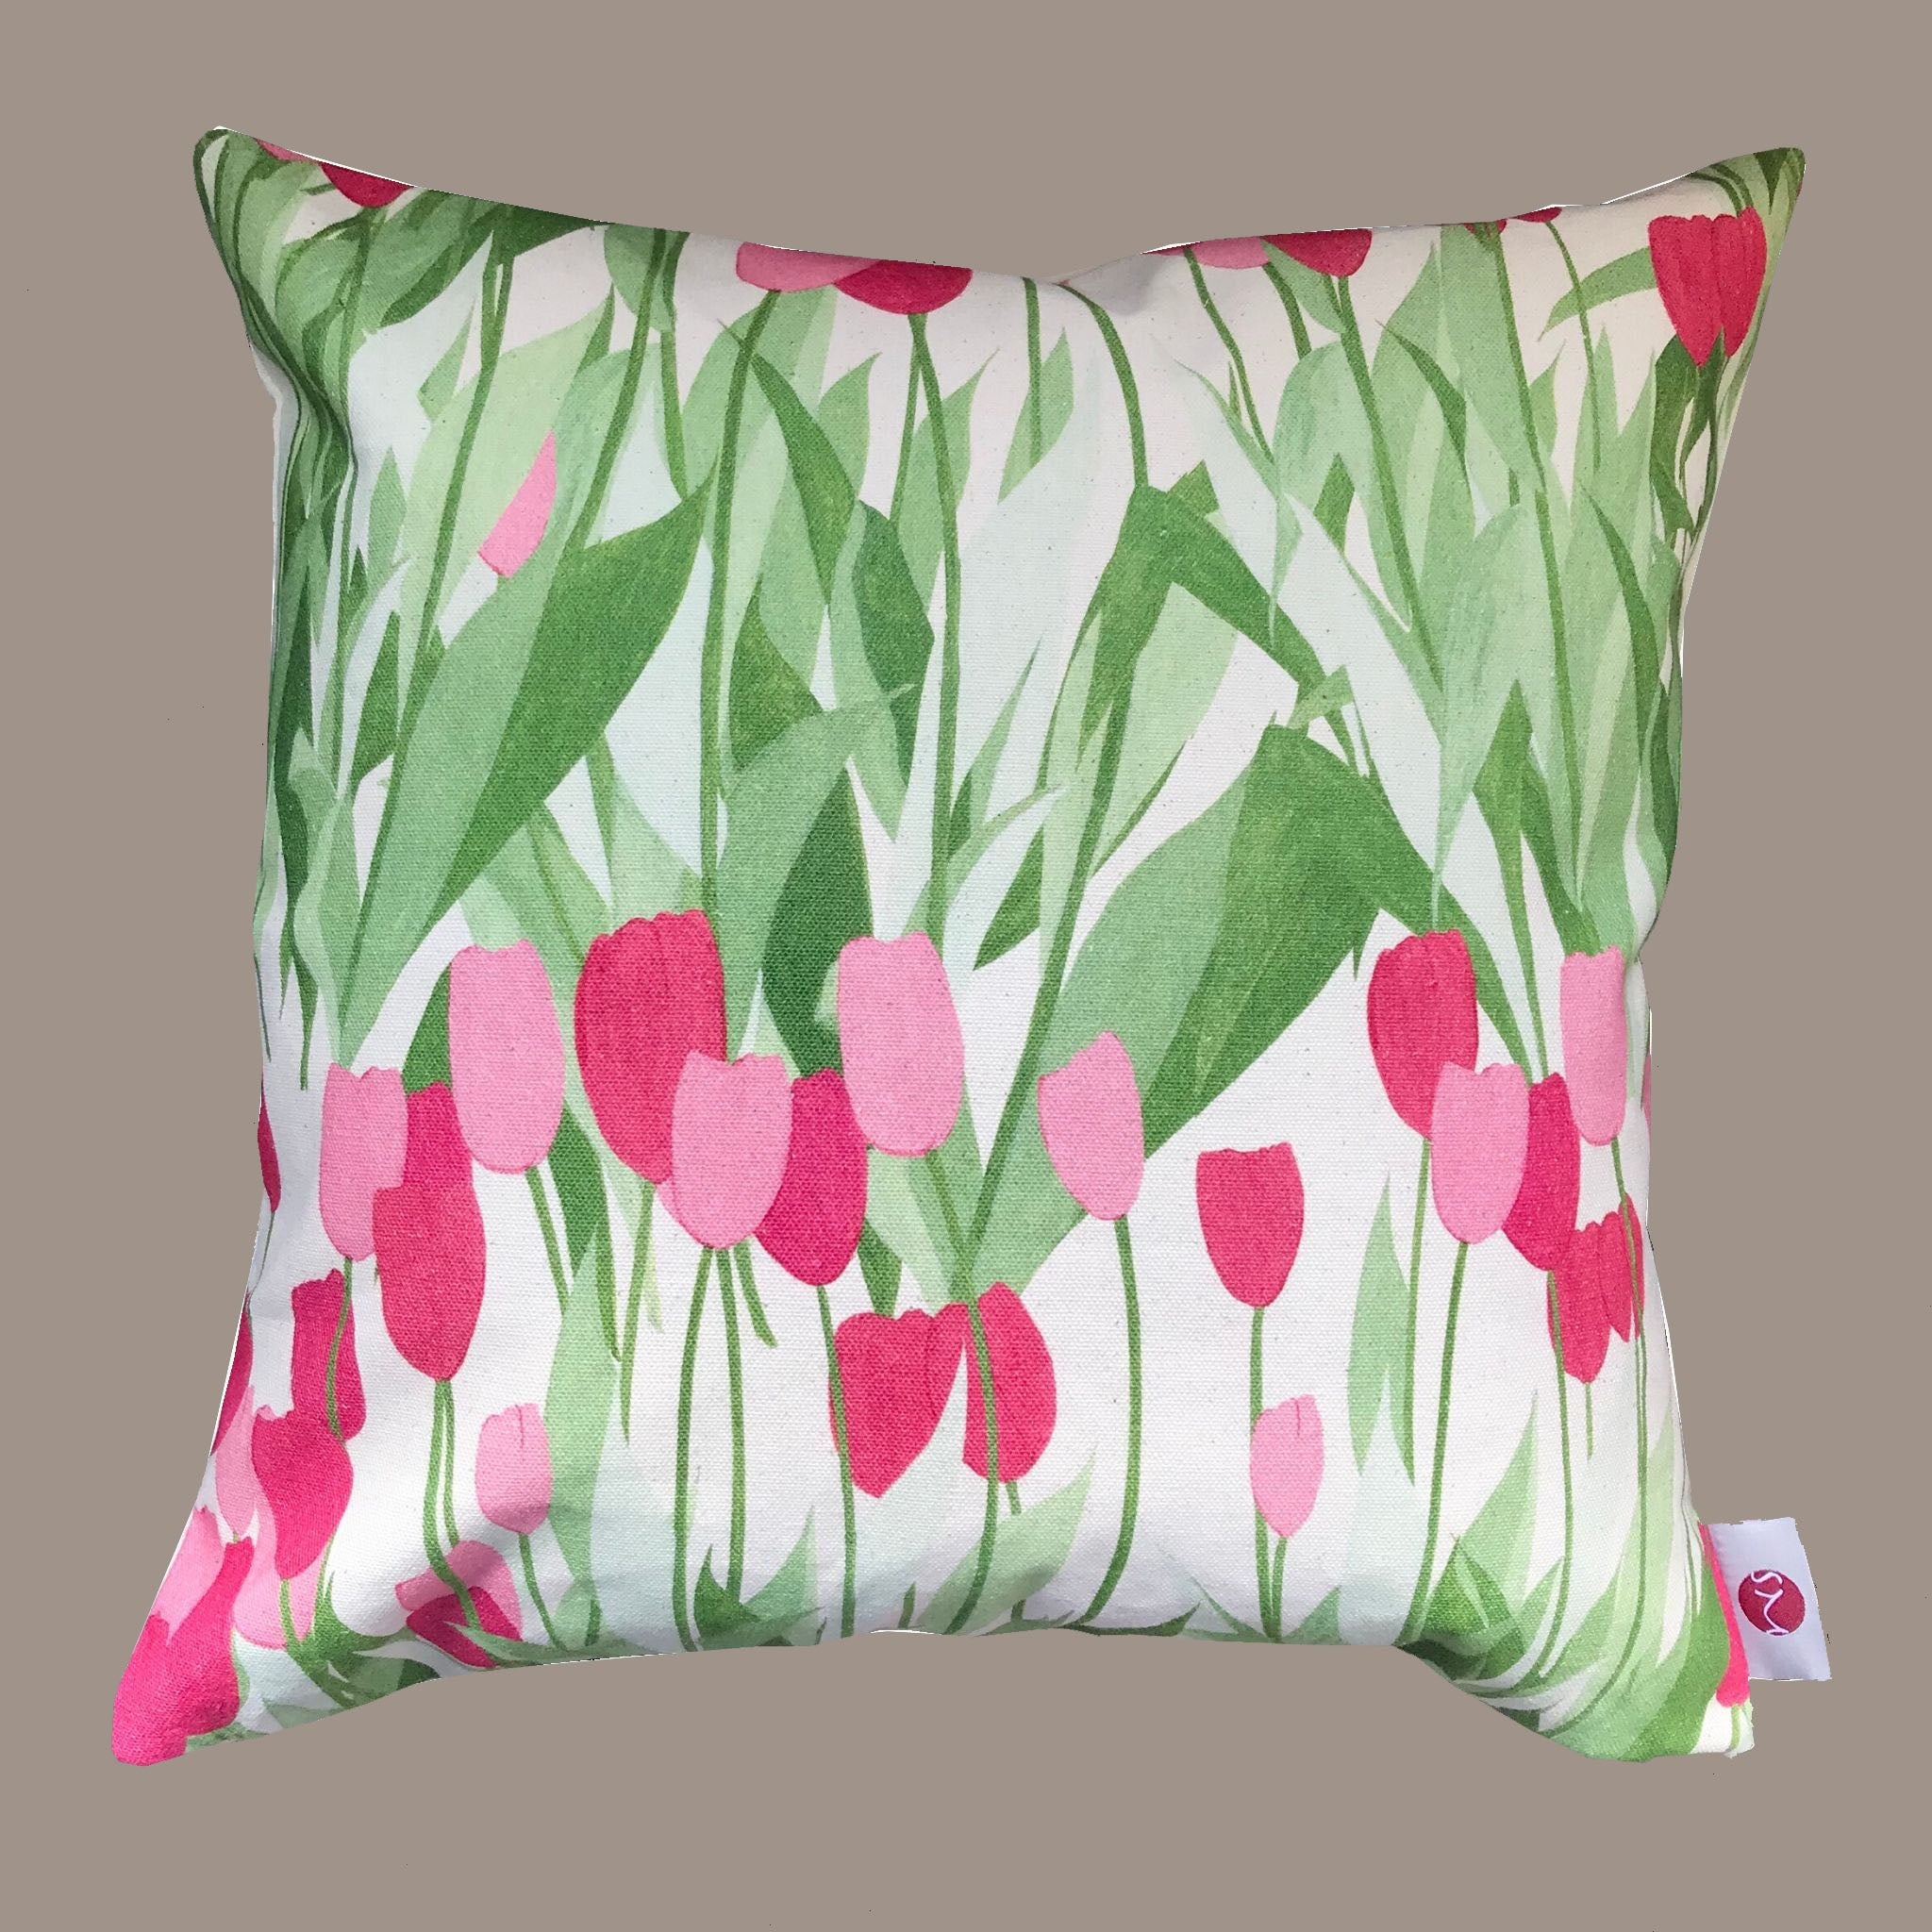 In Bloom Spinel Red cushion